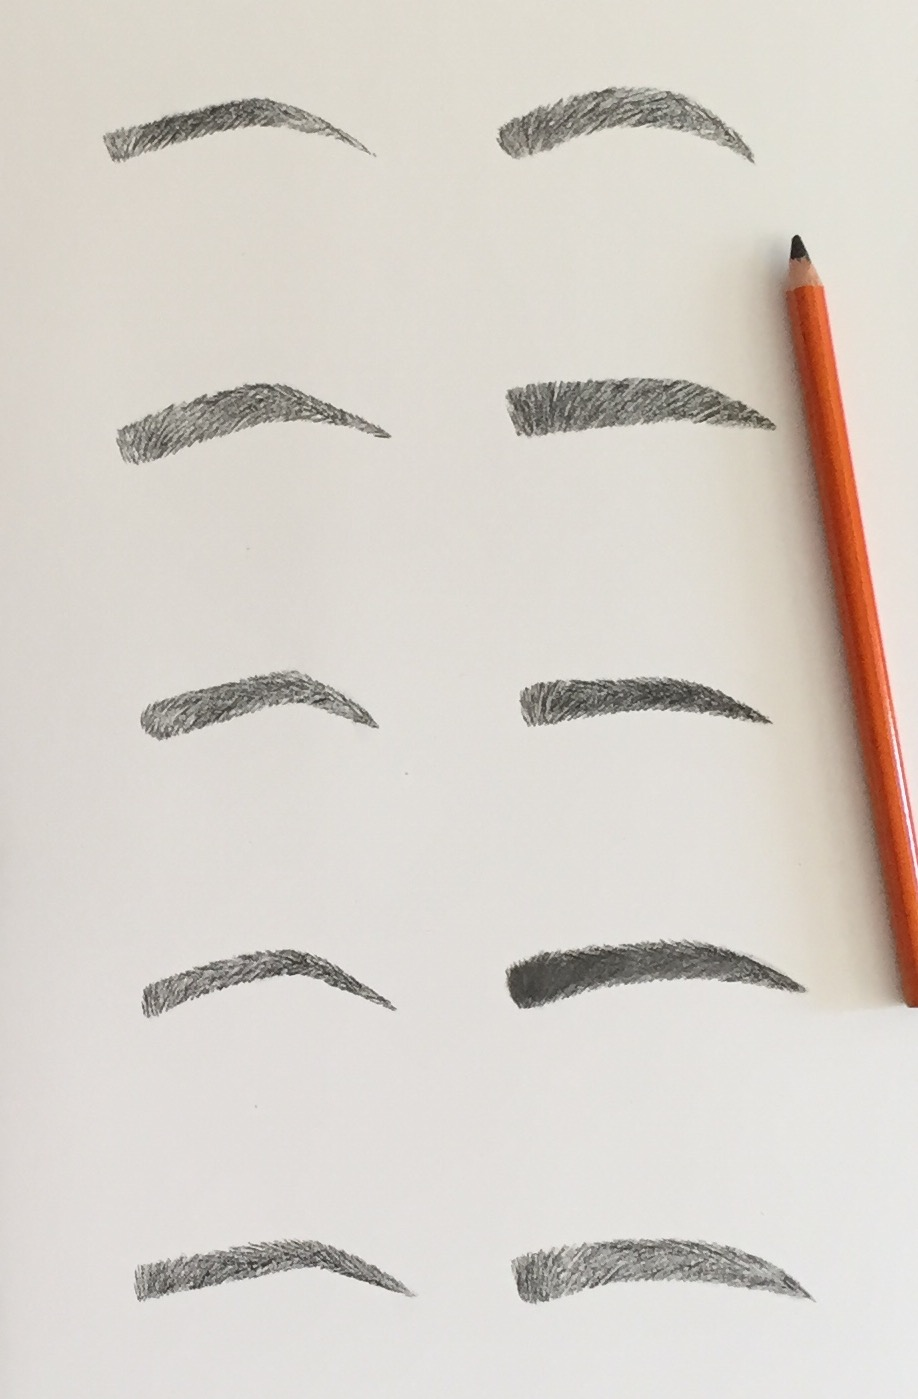 Examples of some of Dr. Champagne's hand-drawn eyebrow shapes.